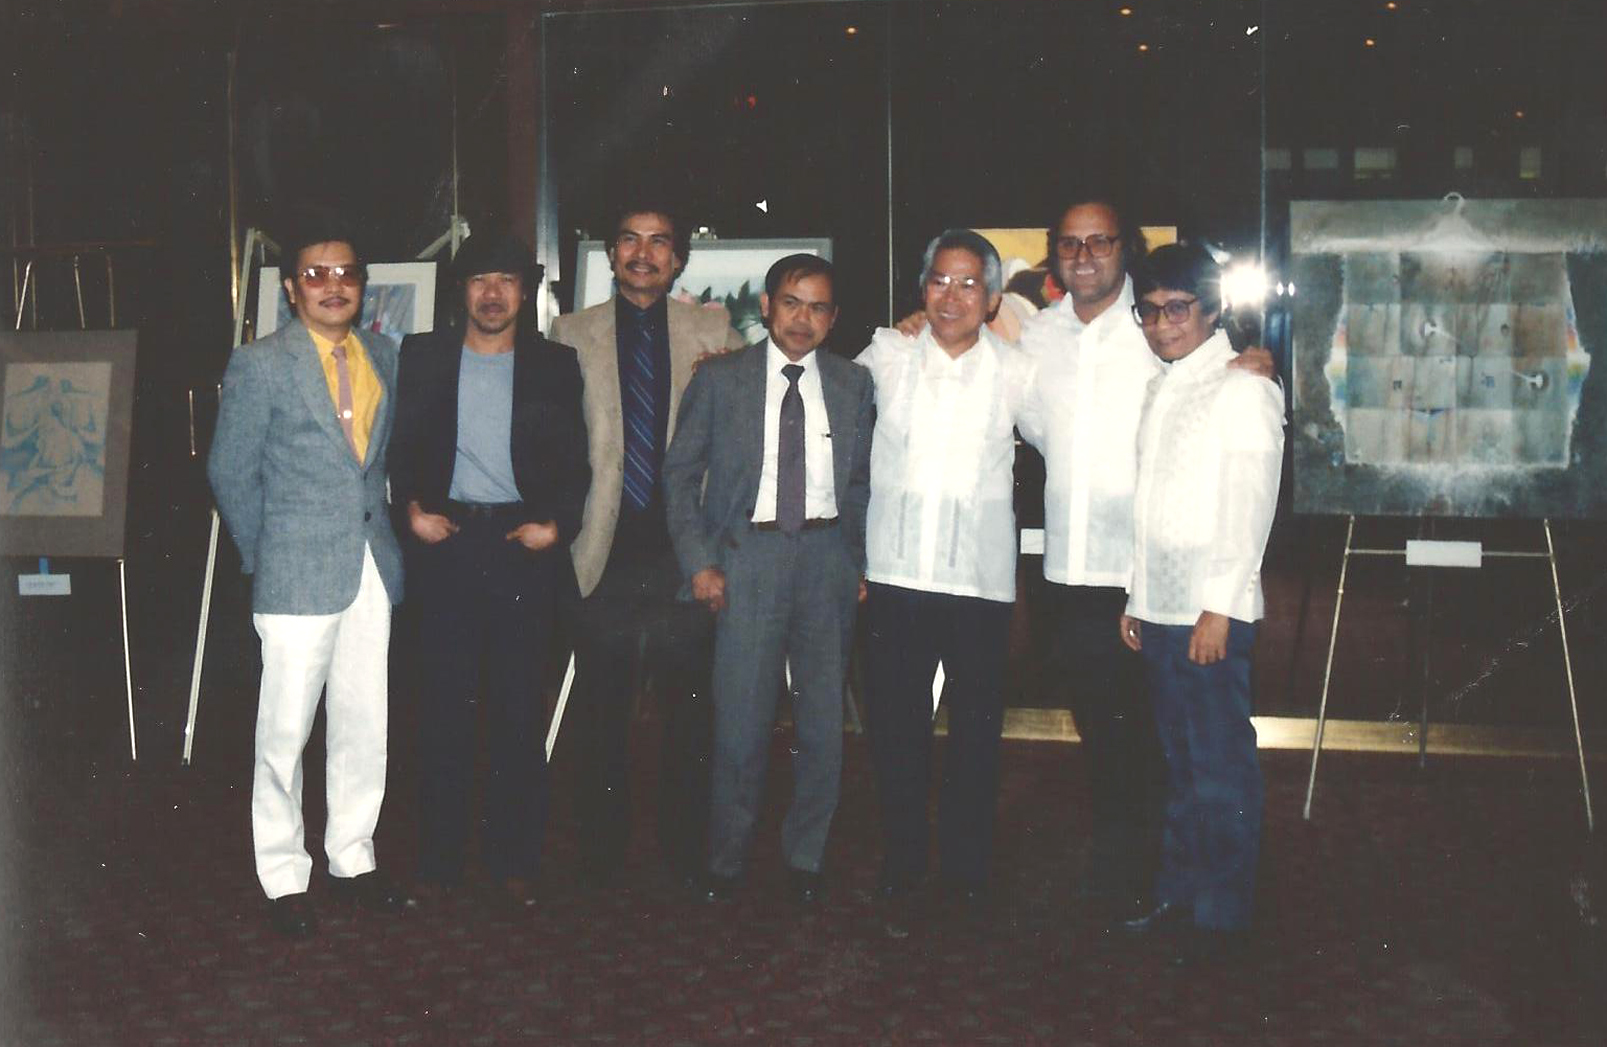 Romi (extreme right) with fellow artists during the first ever Philippine artshow in Toronto. (L-R) Papu Leynes, Ike Dizon, Art Cunanan, Ed Araquel, Rol Lampitoc, and Hubert Sabelis.